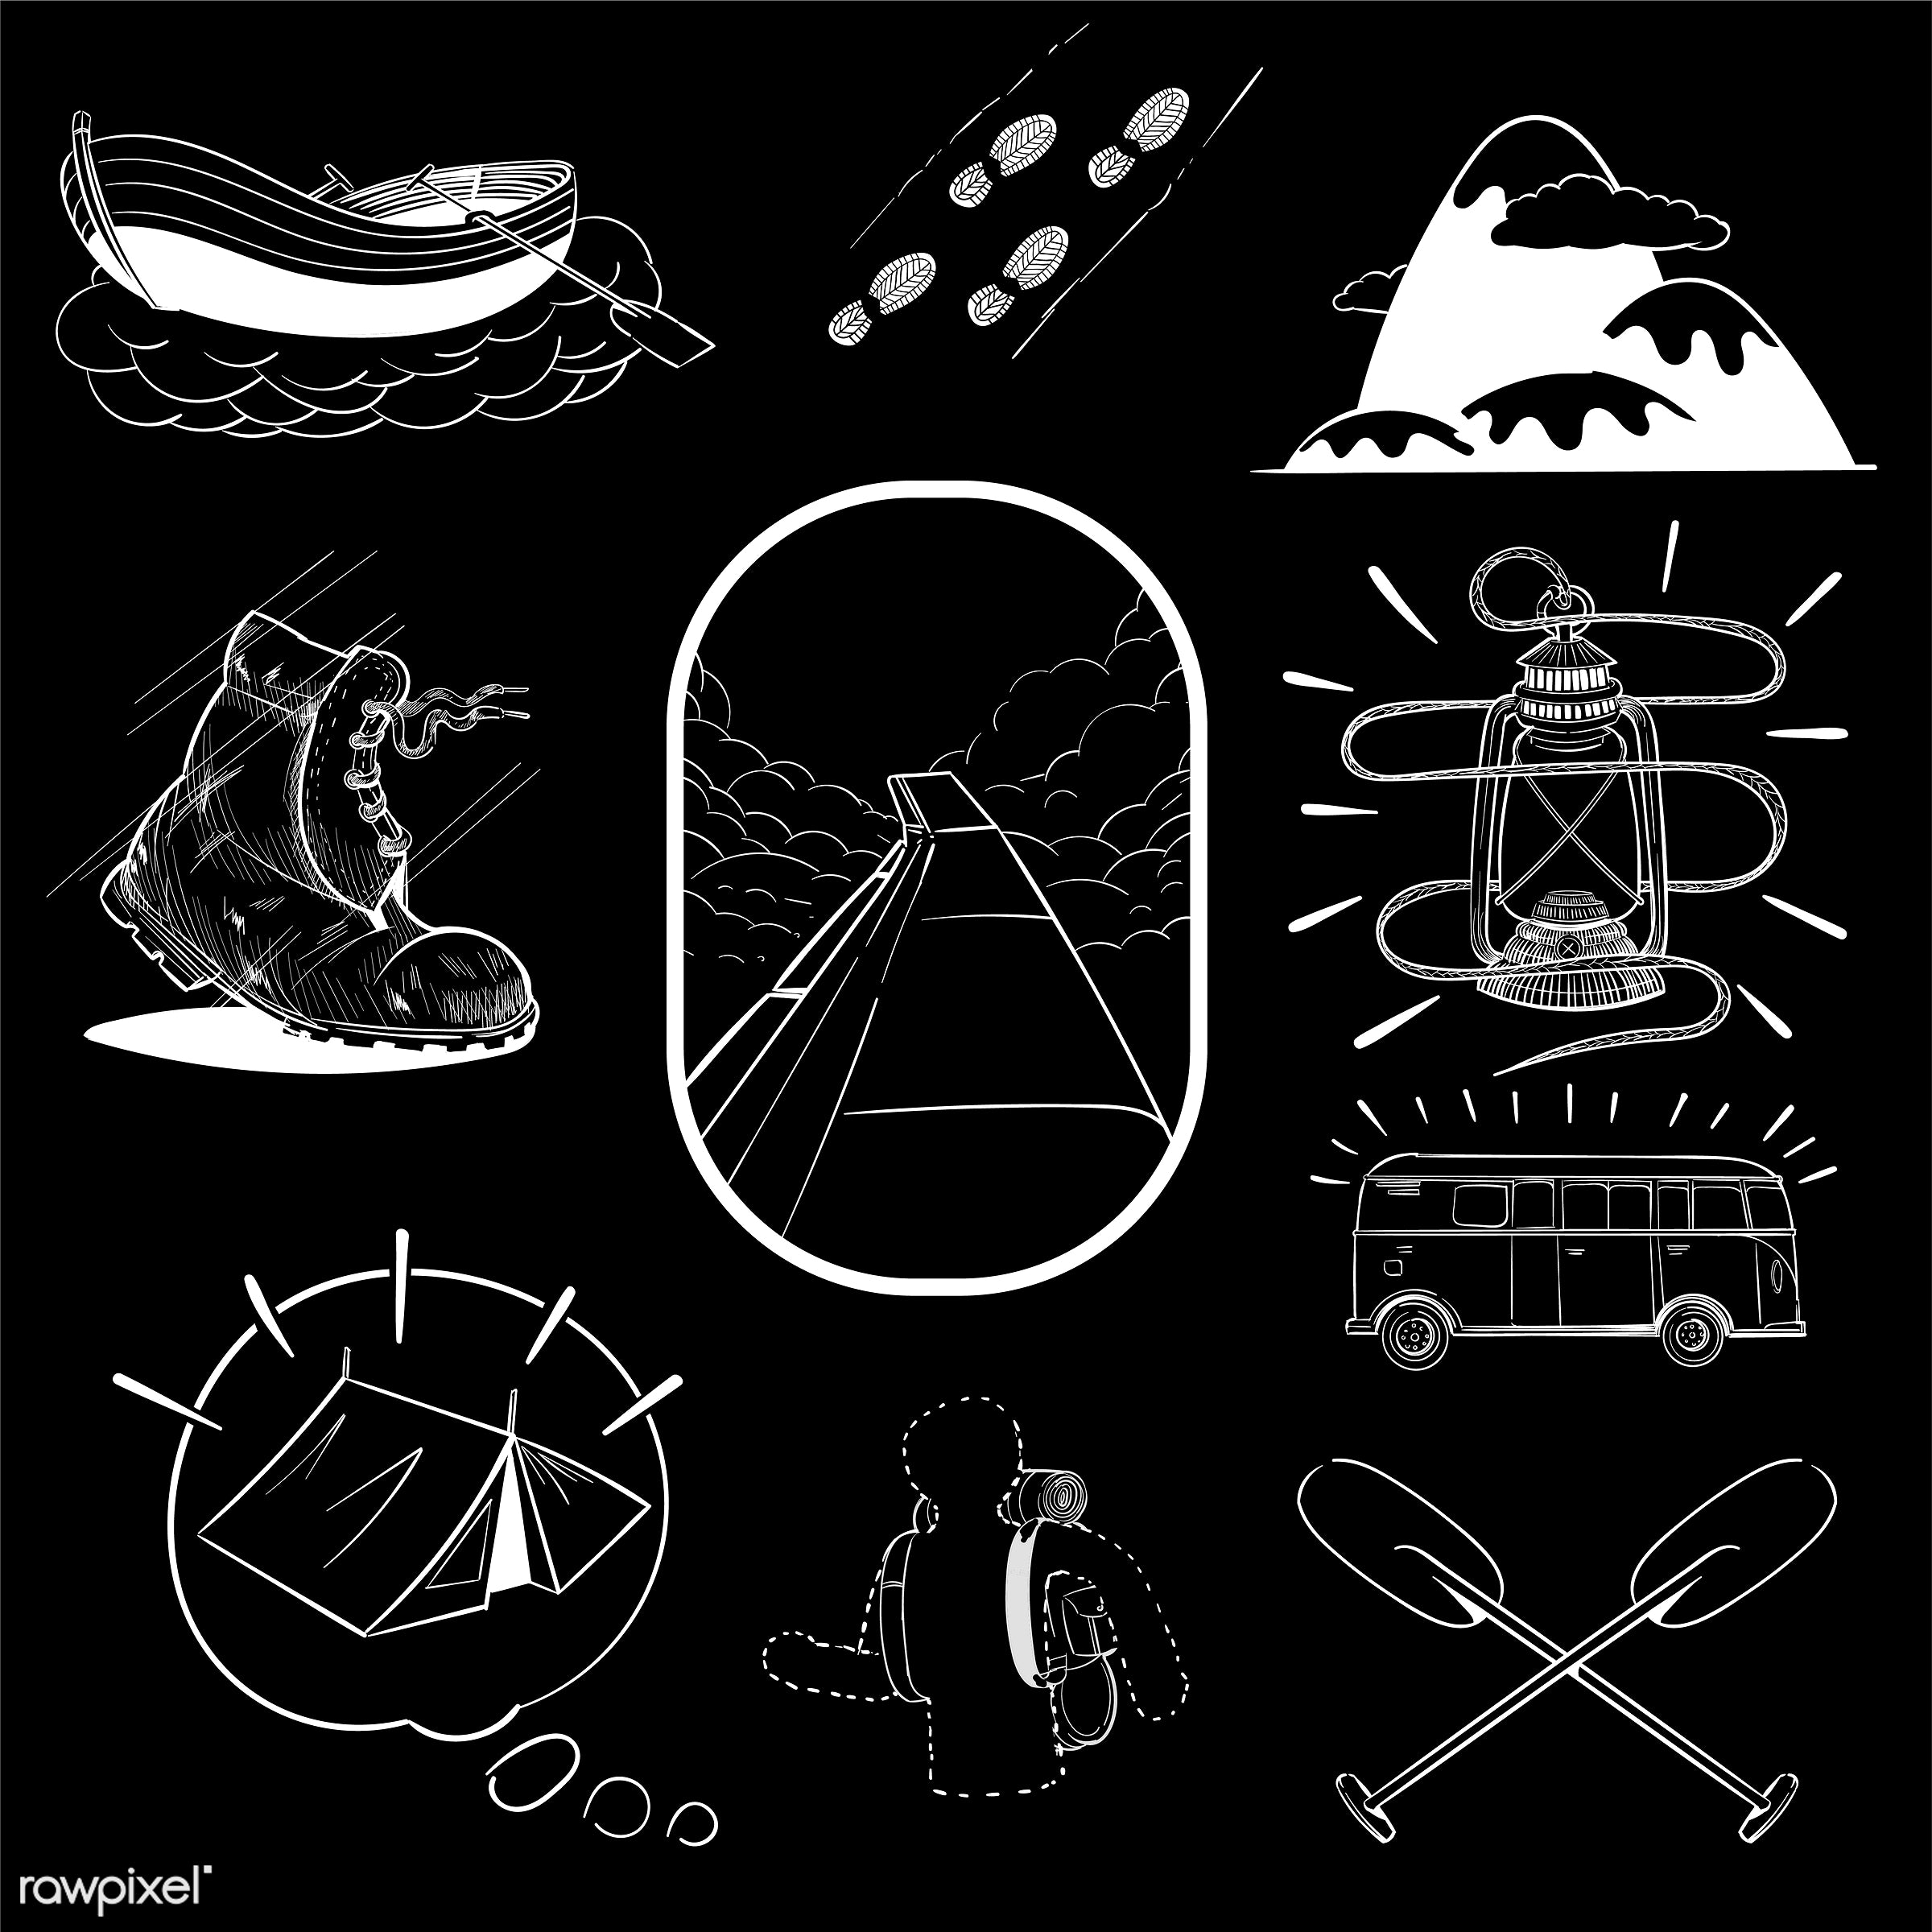 Hand drawing illustration set of wanderlust icons - adventure, art, artwork, camp, camping, collection, creative, creativity...